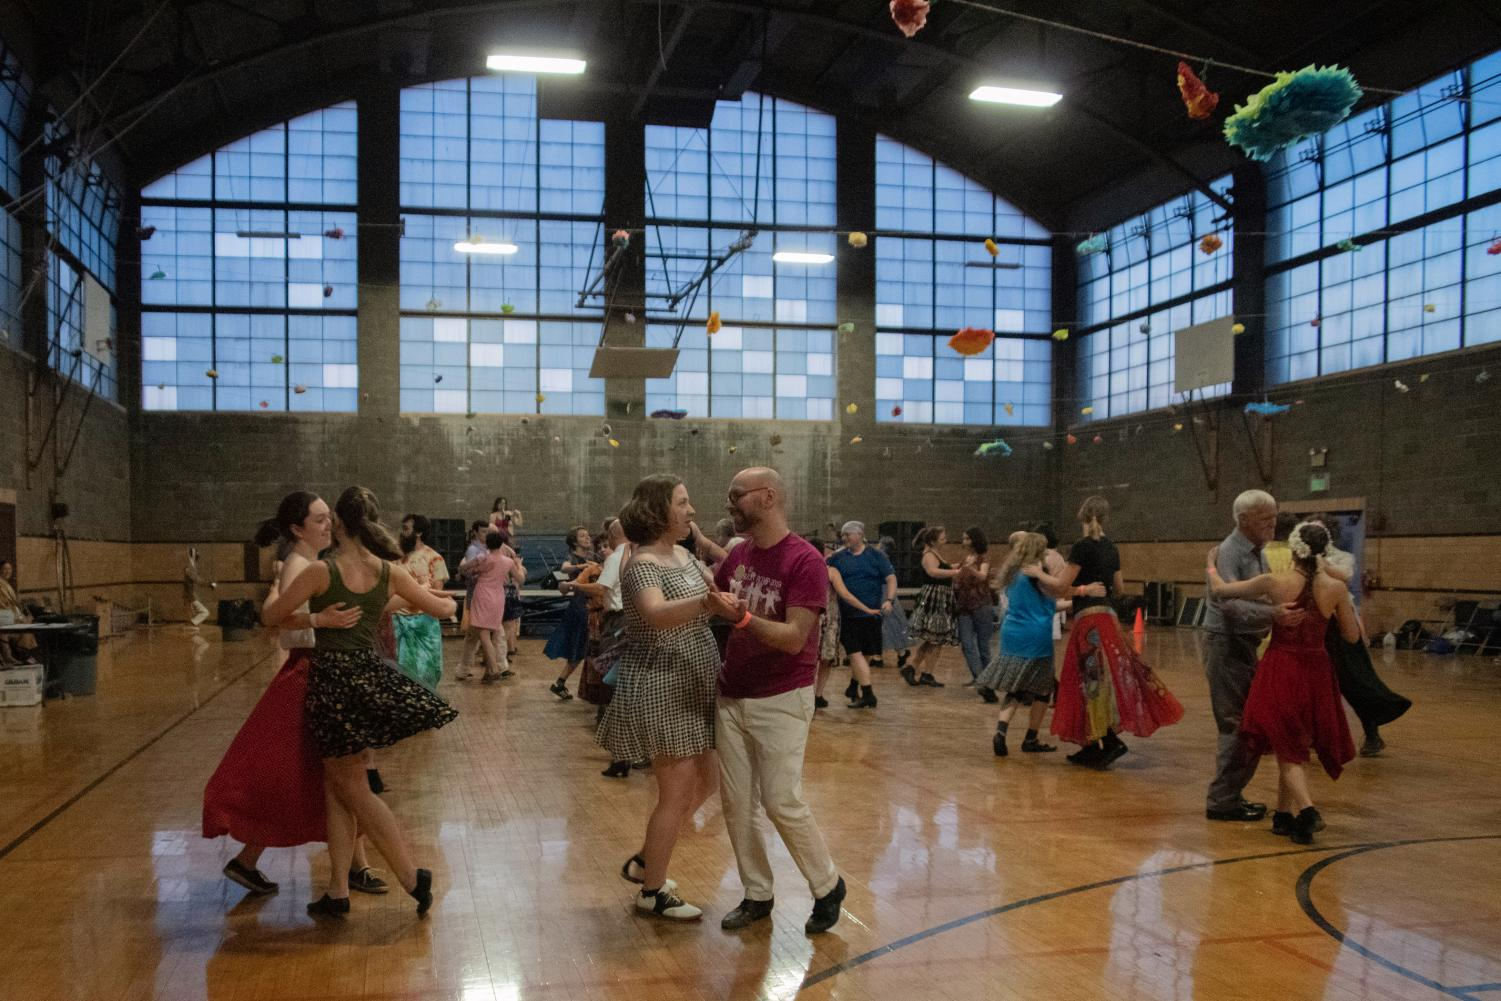 Oberlin's annual Dandelion Romp celebrated its 20th anniversary last weekend, filling Hales Gym with an animated crowd of dancers. Dandelion Romp is a three-day contra dance event where community members come together and practice the folk dance. Contra is an American dance form with Scottish, French, and English origins and features lines of couples who intermingle throughout a dance, led by a caller who teaches the dance's steps and rules.Oberlin hosted the event from 7:30 p.m. to 12 a.m. Friday, 9 a.m. to 12 a.m. Saturday, and from 9 a.m. to 4:00 p.m. Sunday, with supplemental workshops at the Cat in the Cream on Saturday and Sunday. The proceedings featured Dela Murphy and Alexandra Deis-Lauby, two touring callers, and touring bands Center Street and Sassafras Stomp. The event, which was organized by College seniors Mikaela Fishman and Caide Jackson, mid-year graduate Adam Work, College first-year Eliza Goodell, and double-degree senior Molly Tucker, drew a range of dancers — some Oberlin students but also many alumni, Oberlin residents, and contra dancers from various walks of life. Swing by next year or come to the on-campus contra dances each month if you'd like to join in the fun!